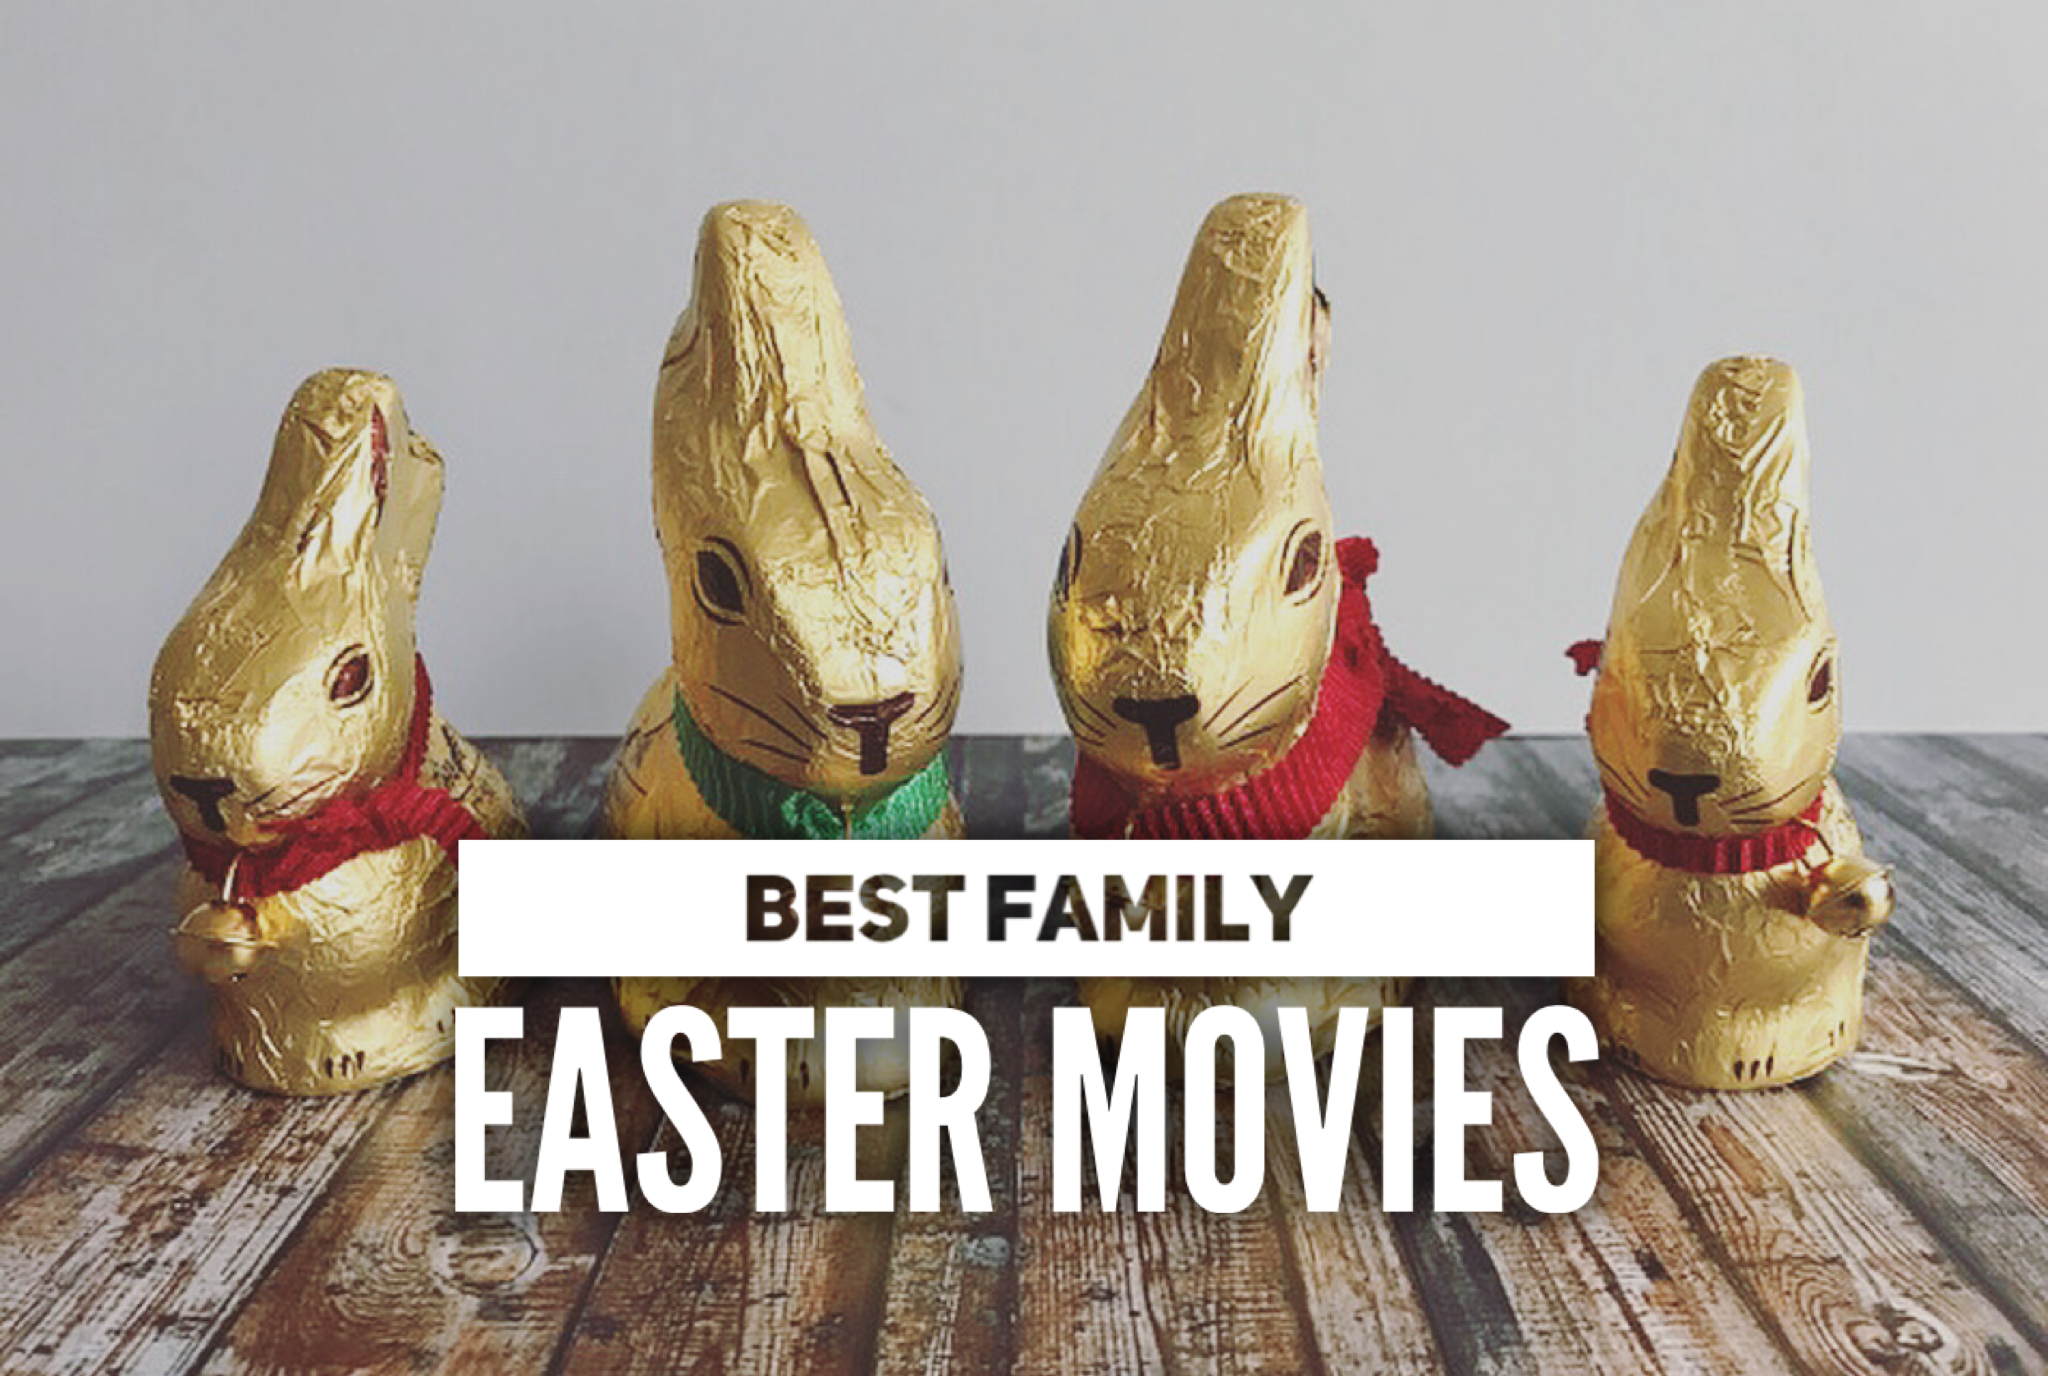 Best Family Easter Movies to Watch with Kids